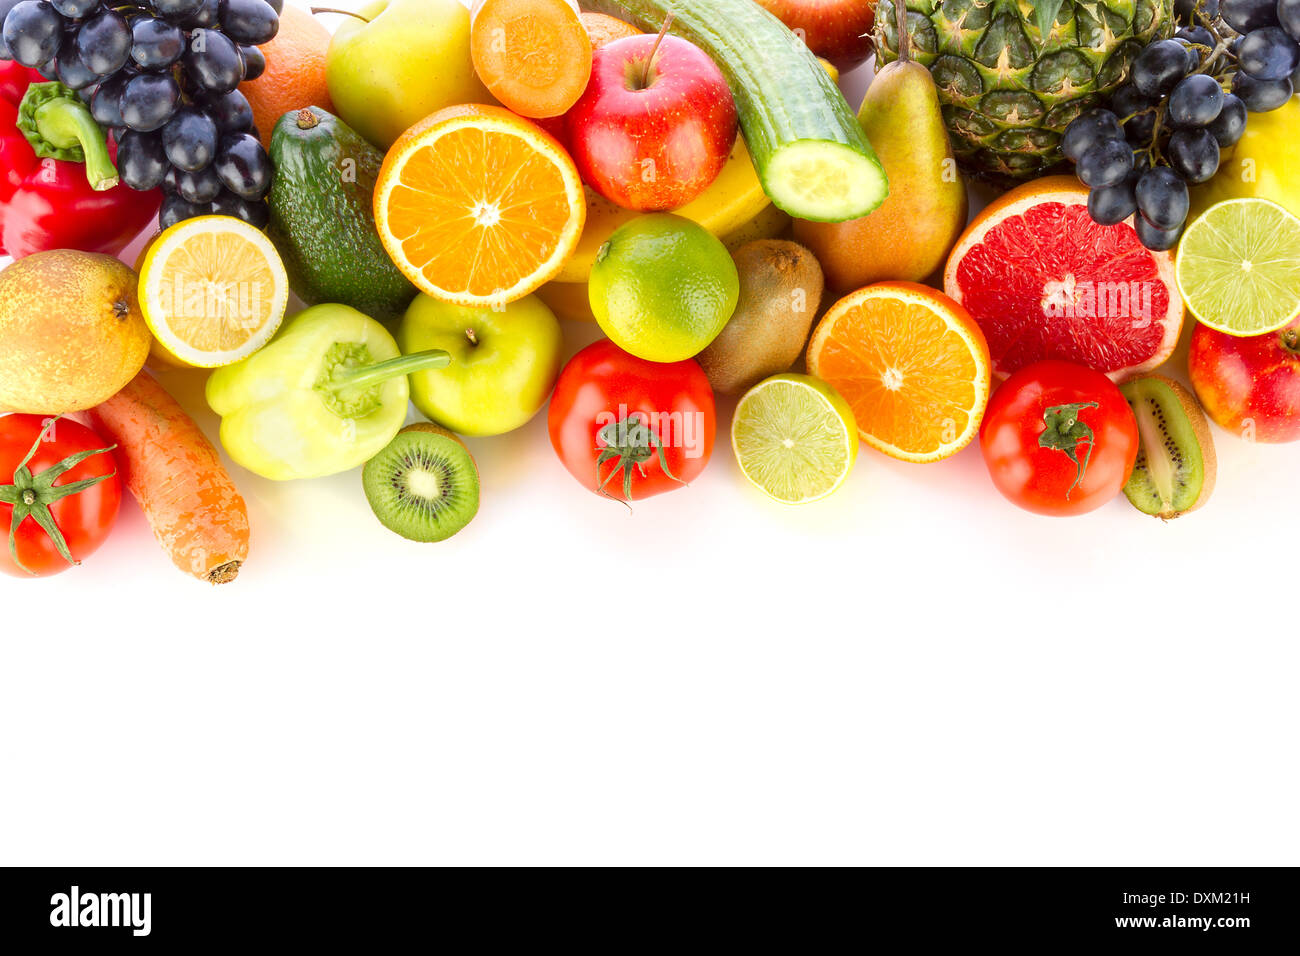 A pile of fresh, healthy fruits and vegetables on white. Stock Photo